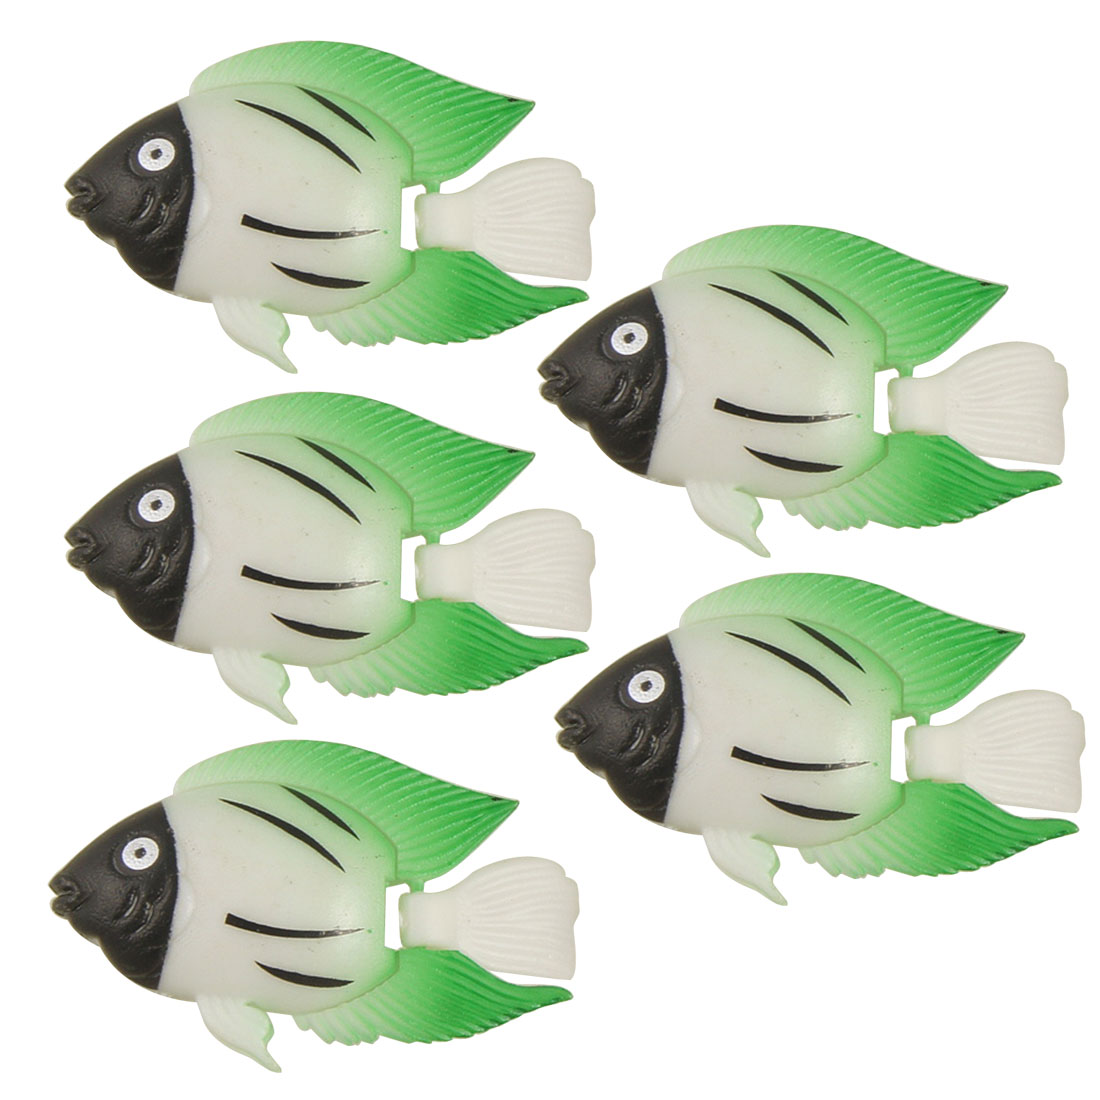 5 Pcs Floating Green Wiggly Tail Plastic Fishes for Aquarium